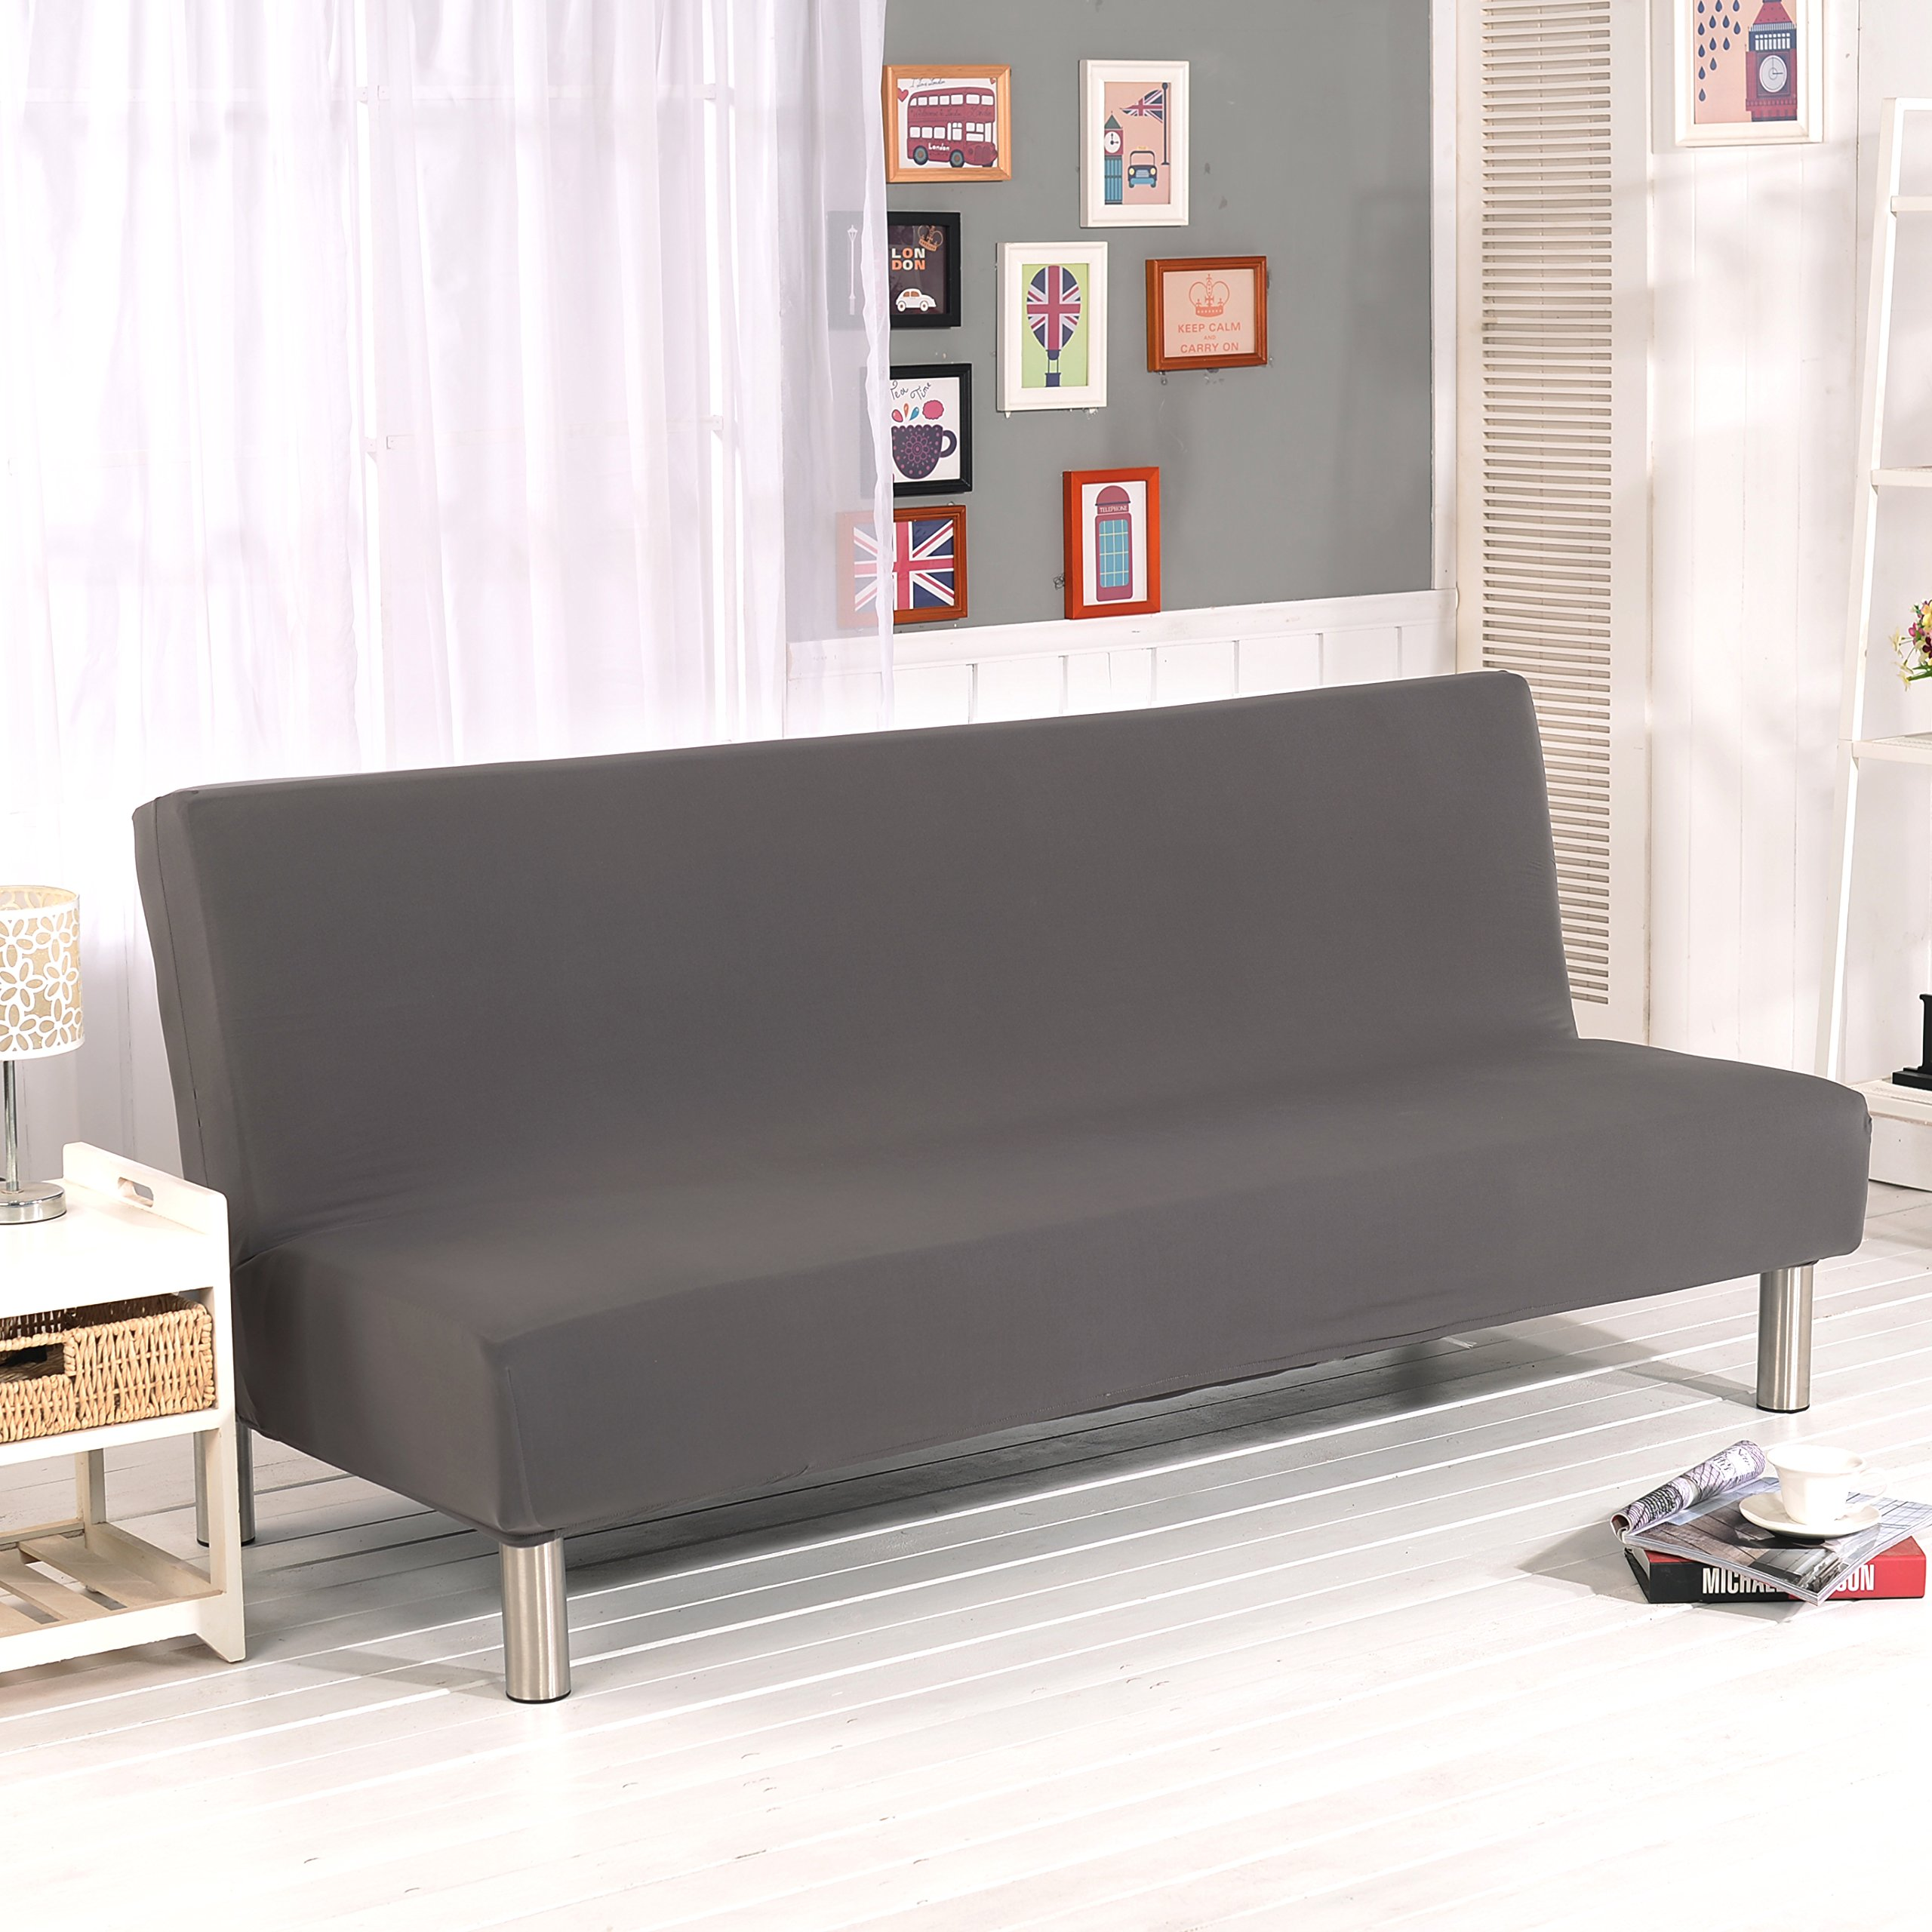 WATTA Solid color Futon Cover Slipcover Couch, Polyester Spandex stretch Bed Cover Replacement,Futon Mattress Cover, Futon mattress protector - Grey - 51'' x 82'' x 12''